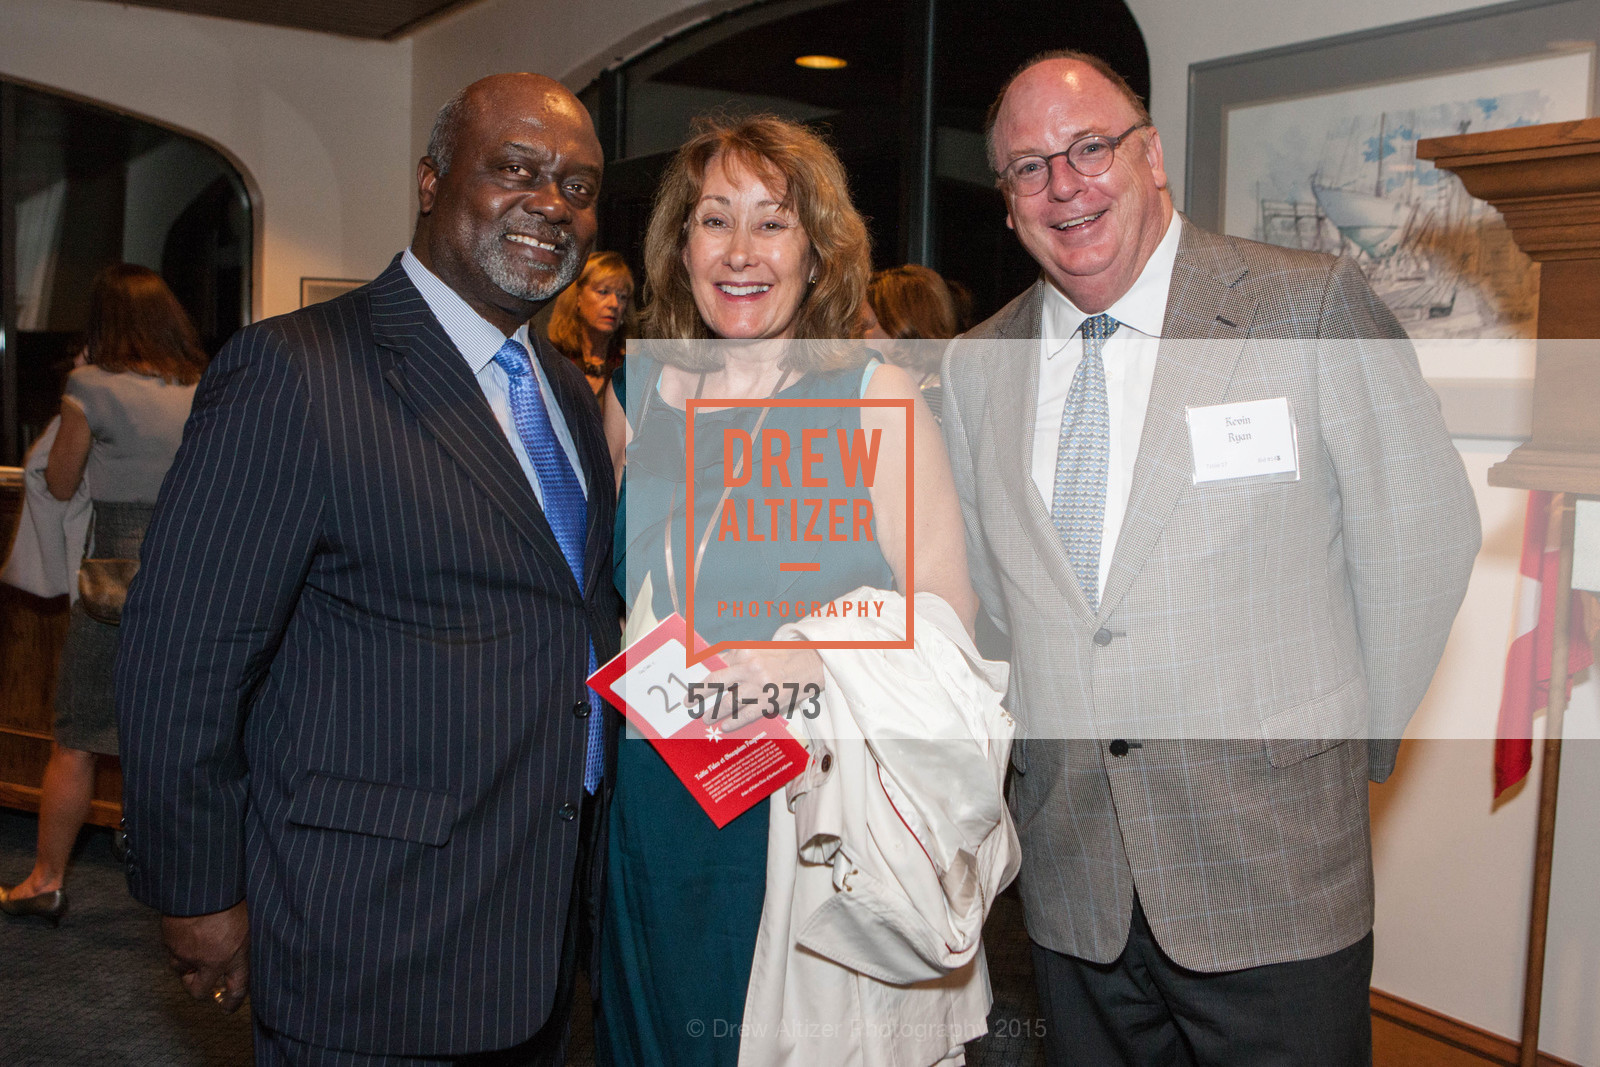 C. Don Clay, Lisa Clay, Kevin Ryan, Sovereign Order of Malta Presents: A Knight for Champions, 7th Annual Silver Chalice Awards Dinner, St. Francis Yacht Club. 99 Yacht Rd, October 13th, 2015,Drew Altizer, Drew Altizer Photography, full-service agency, private events, San Francisco photographer, photographer california